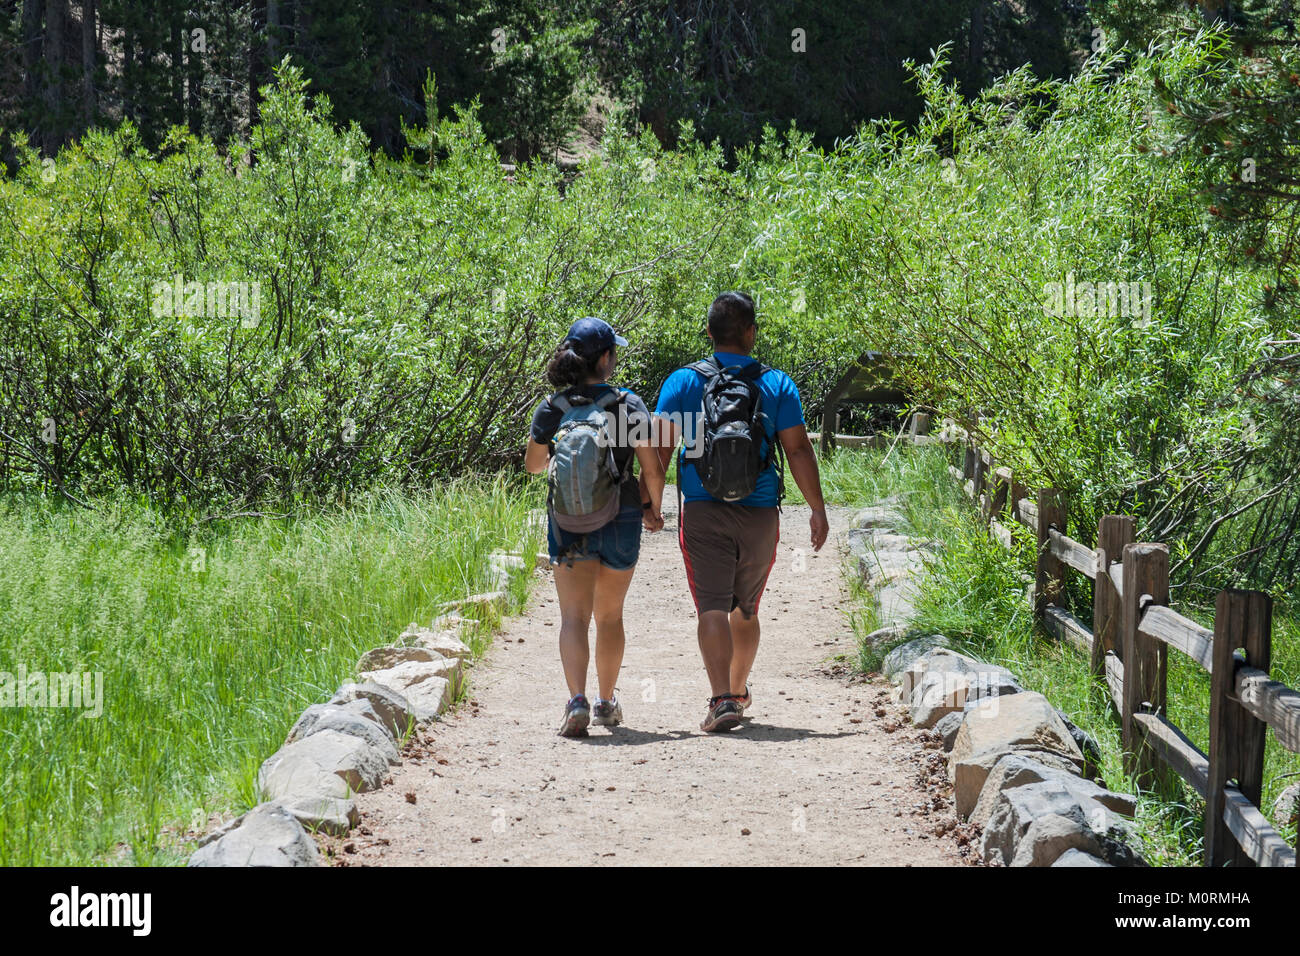 Hikers in Devils Postpile National Monument, Inyo National Forest, Madera County, California, USA - Stock Image